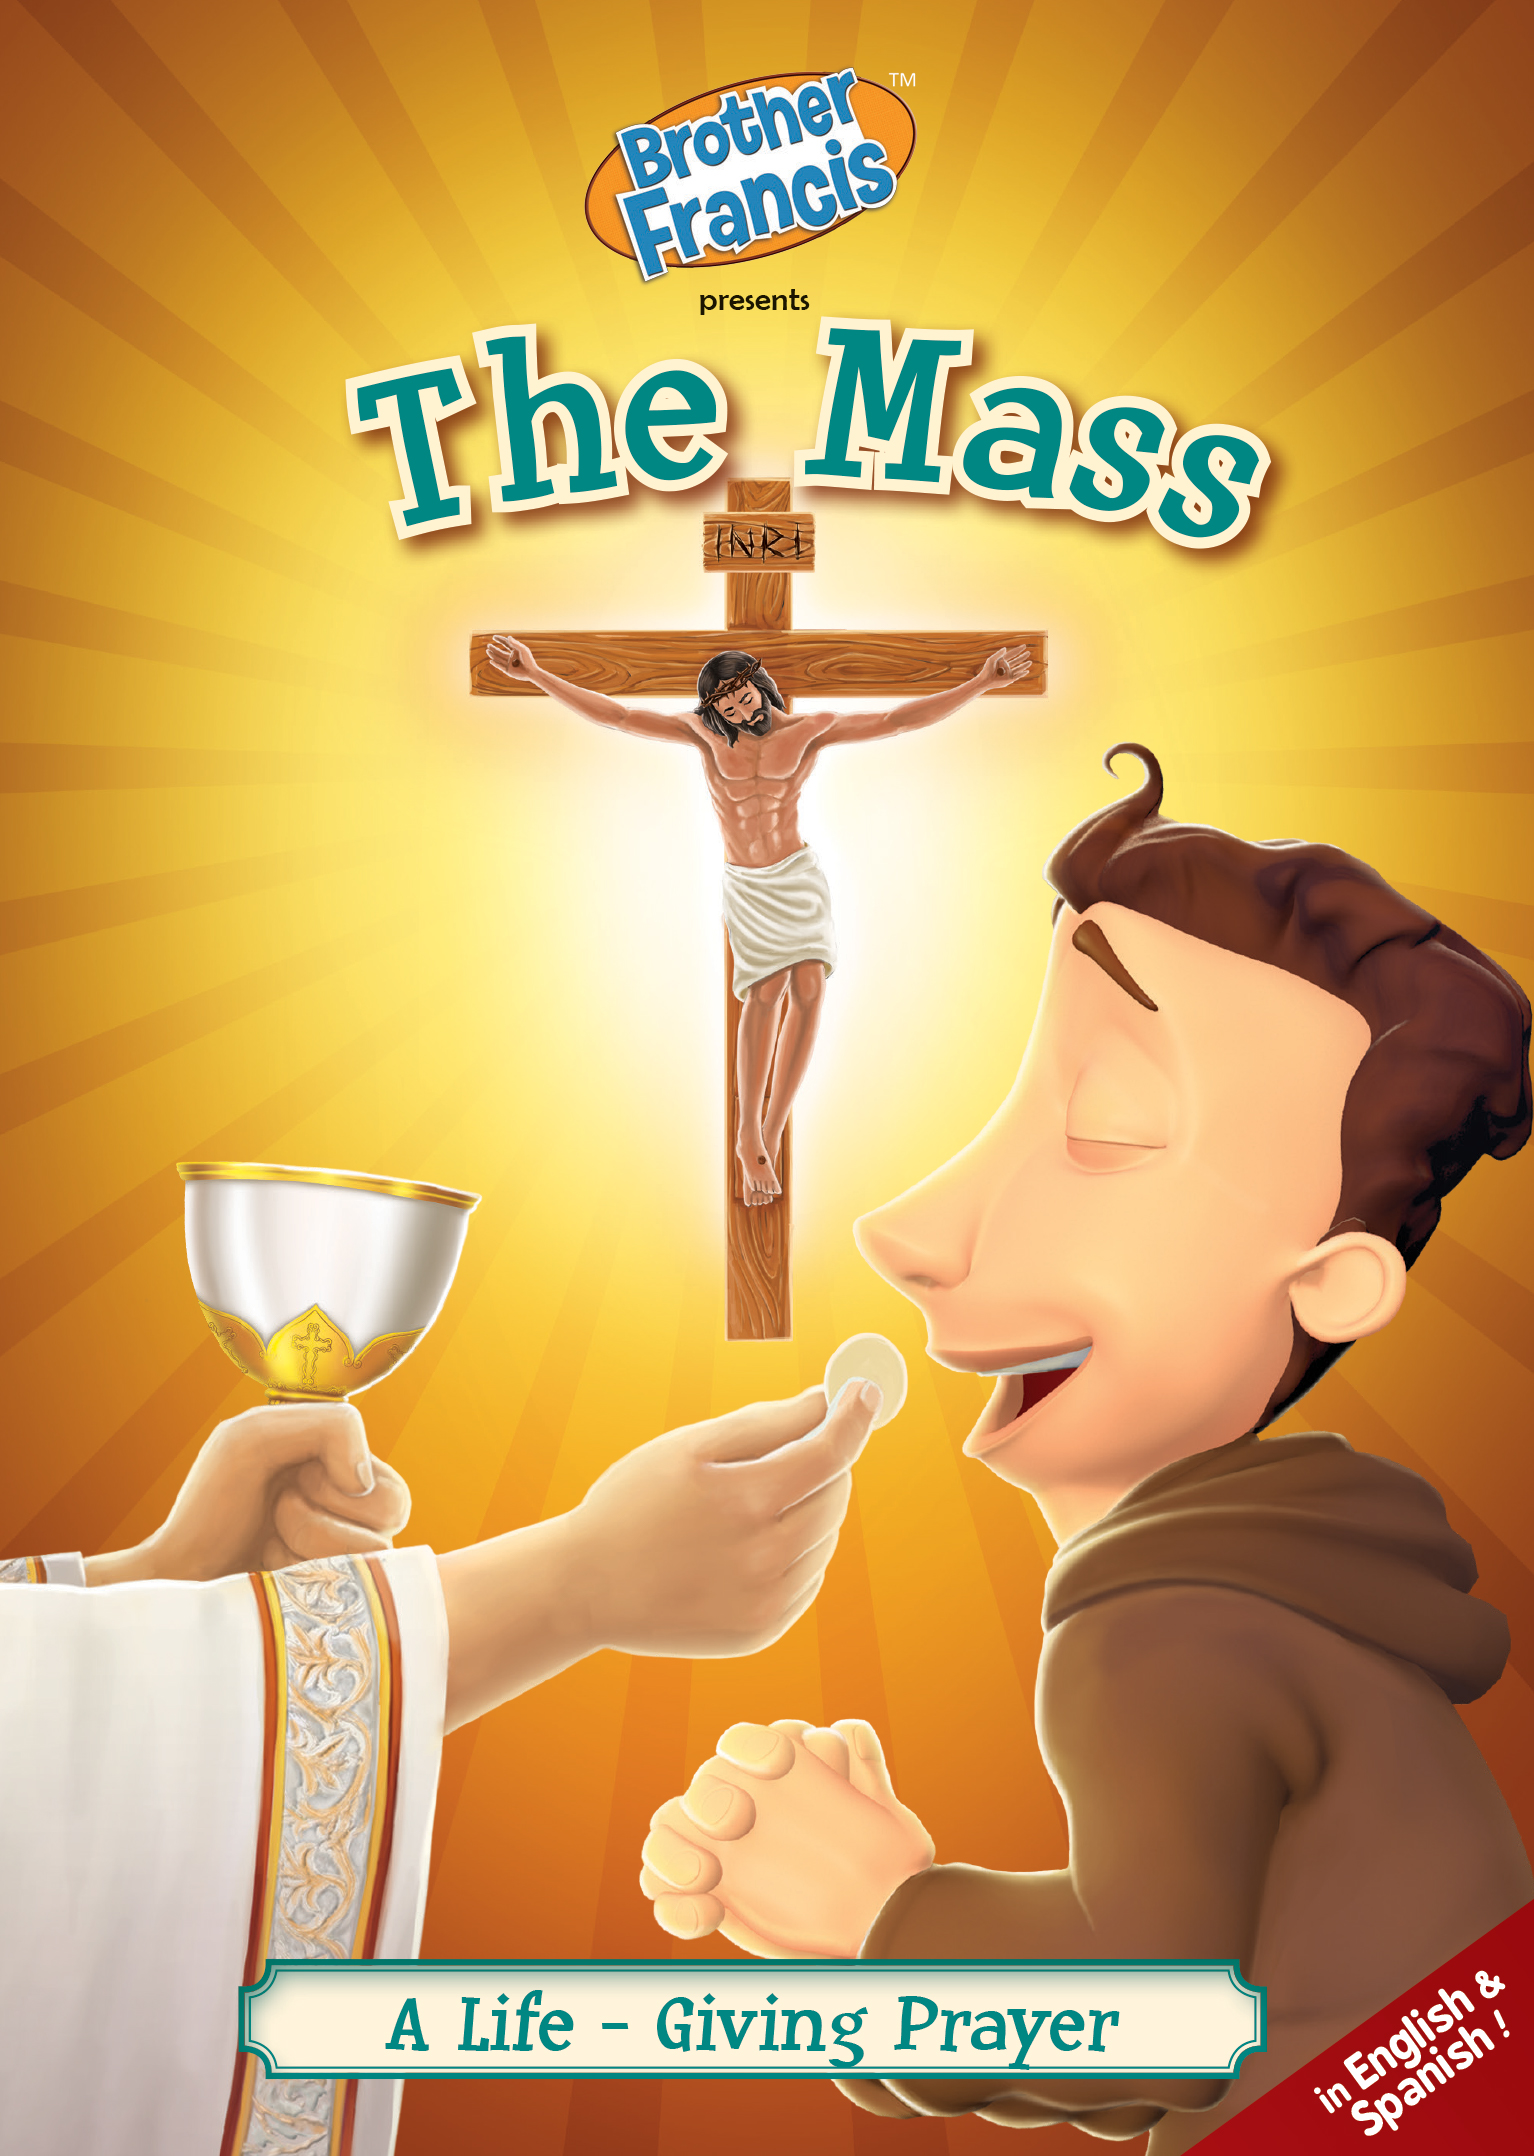 Brother Francis Episode 6: The Mass